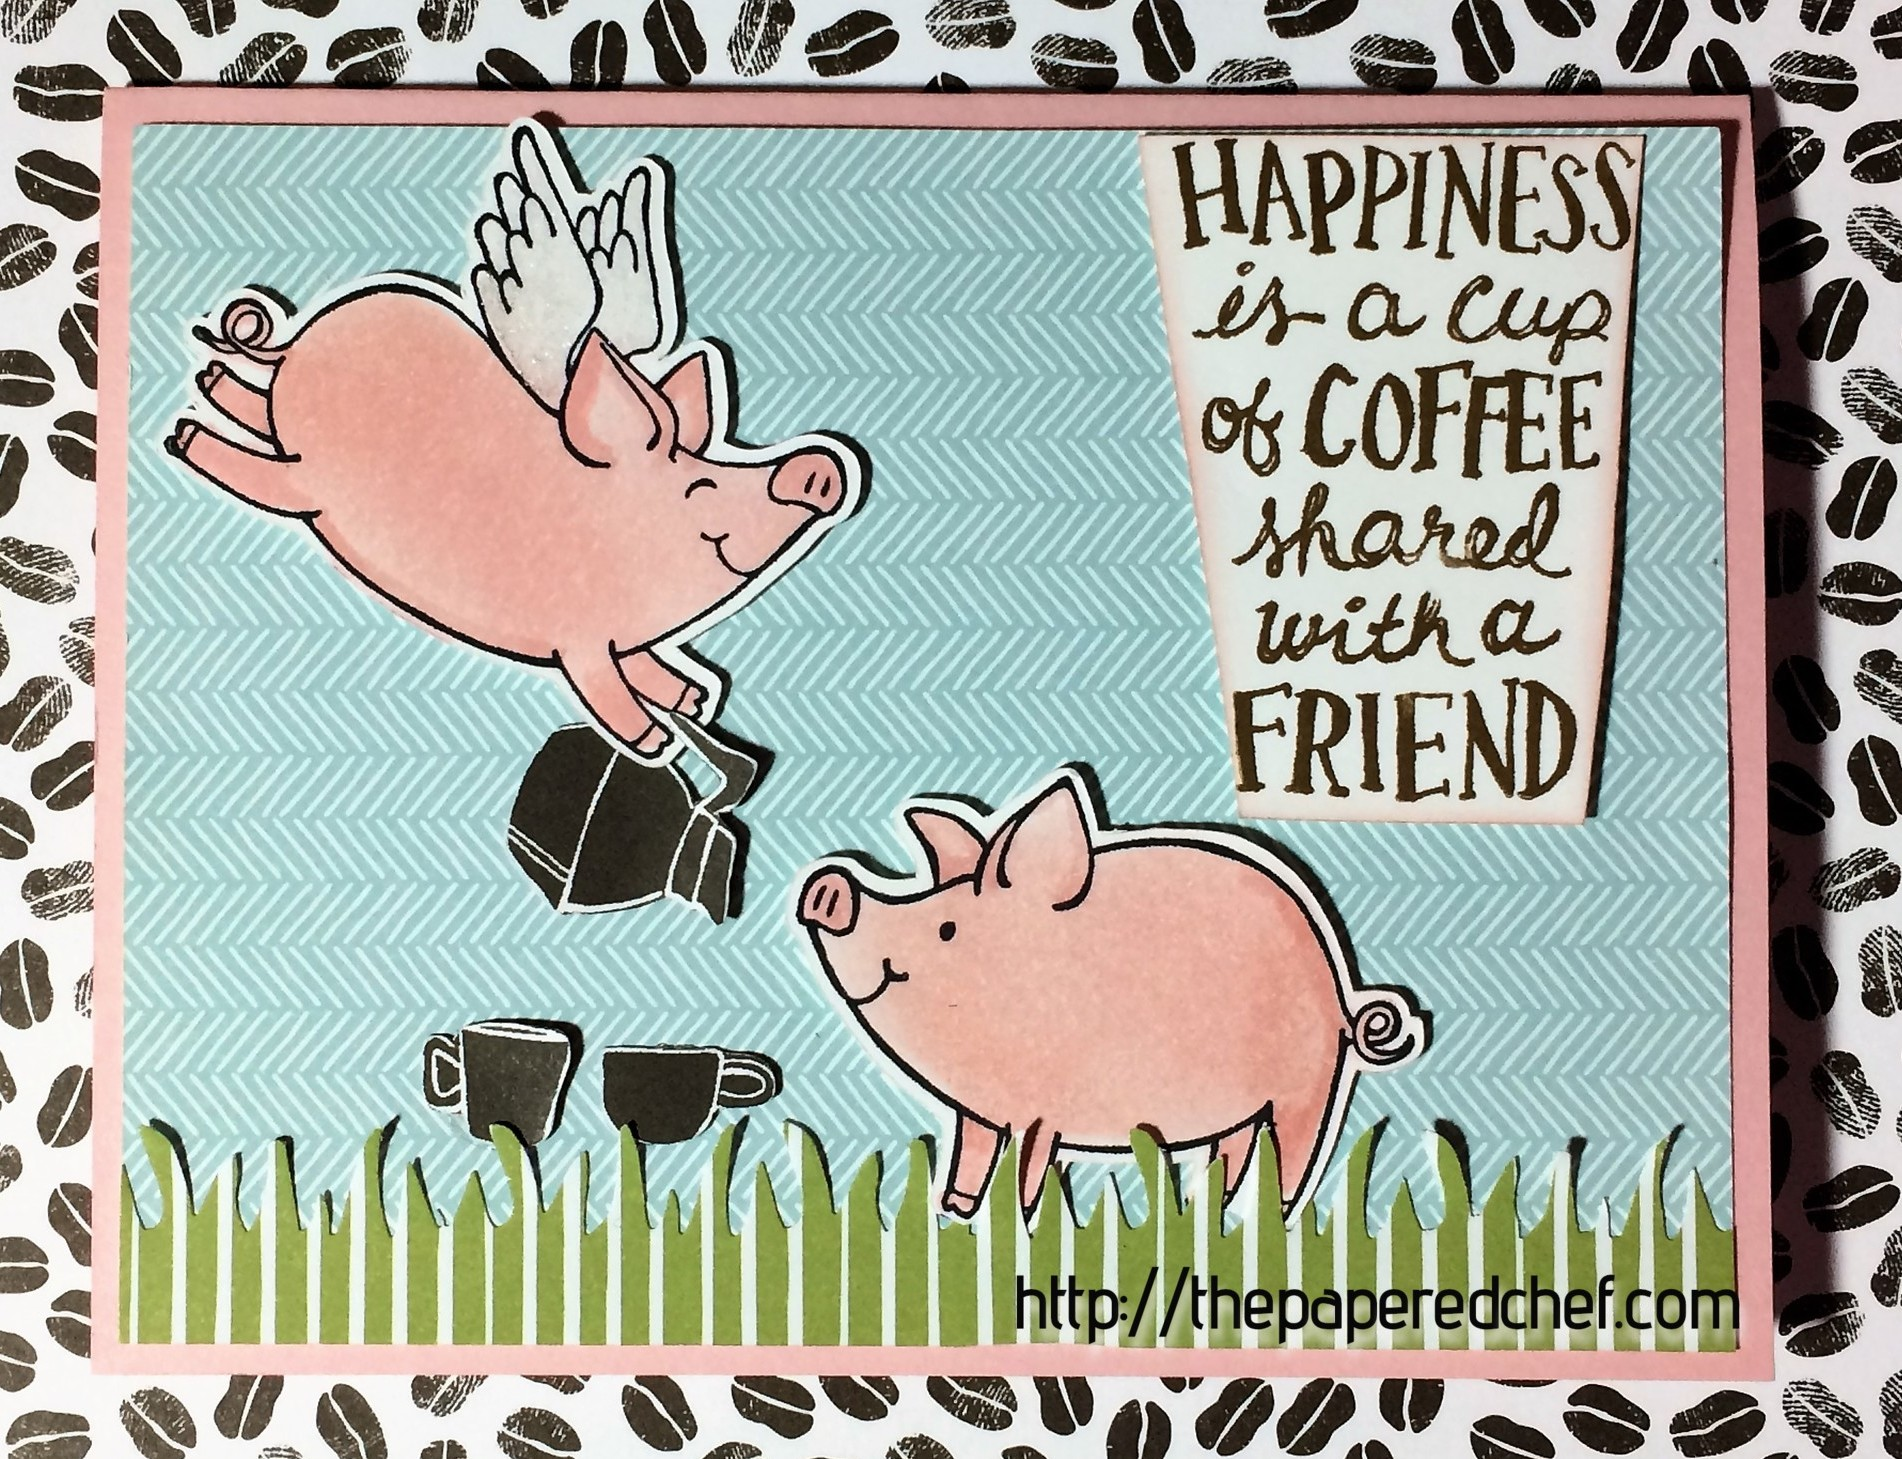 This Little Piggy - Happiness is a Cup of Coffee Shared with a Friend